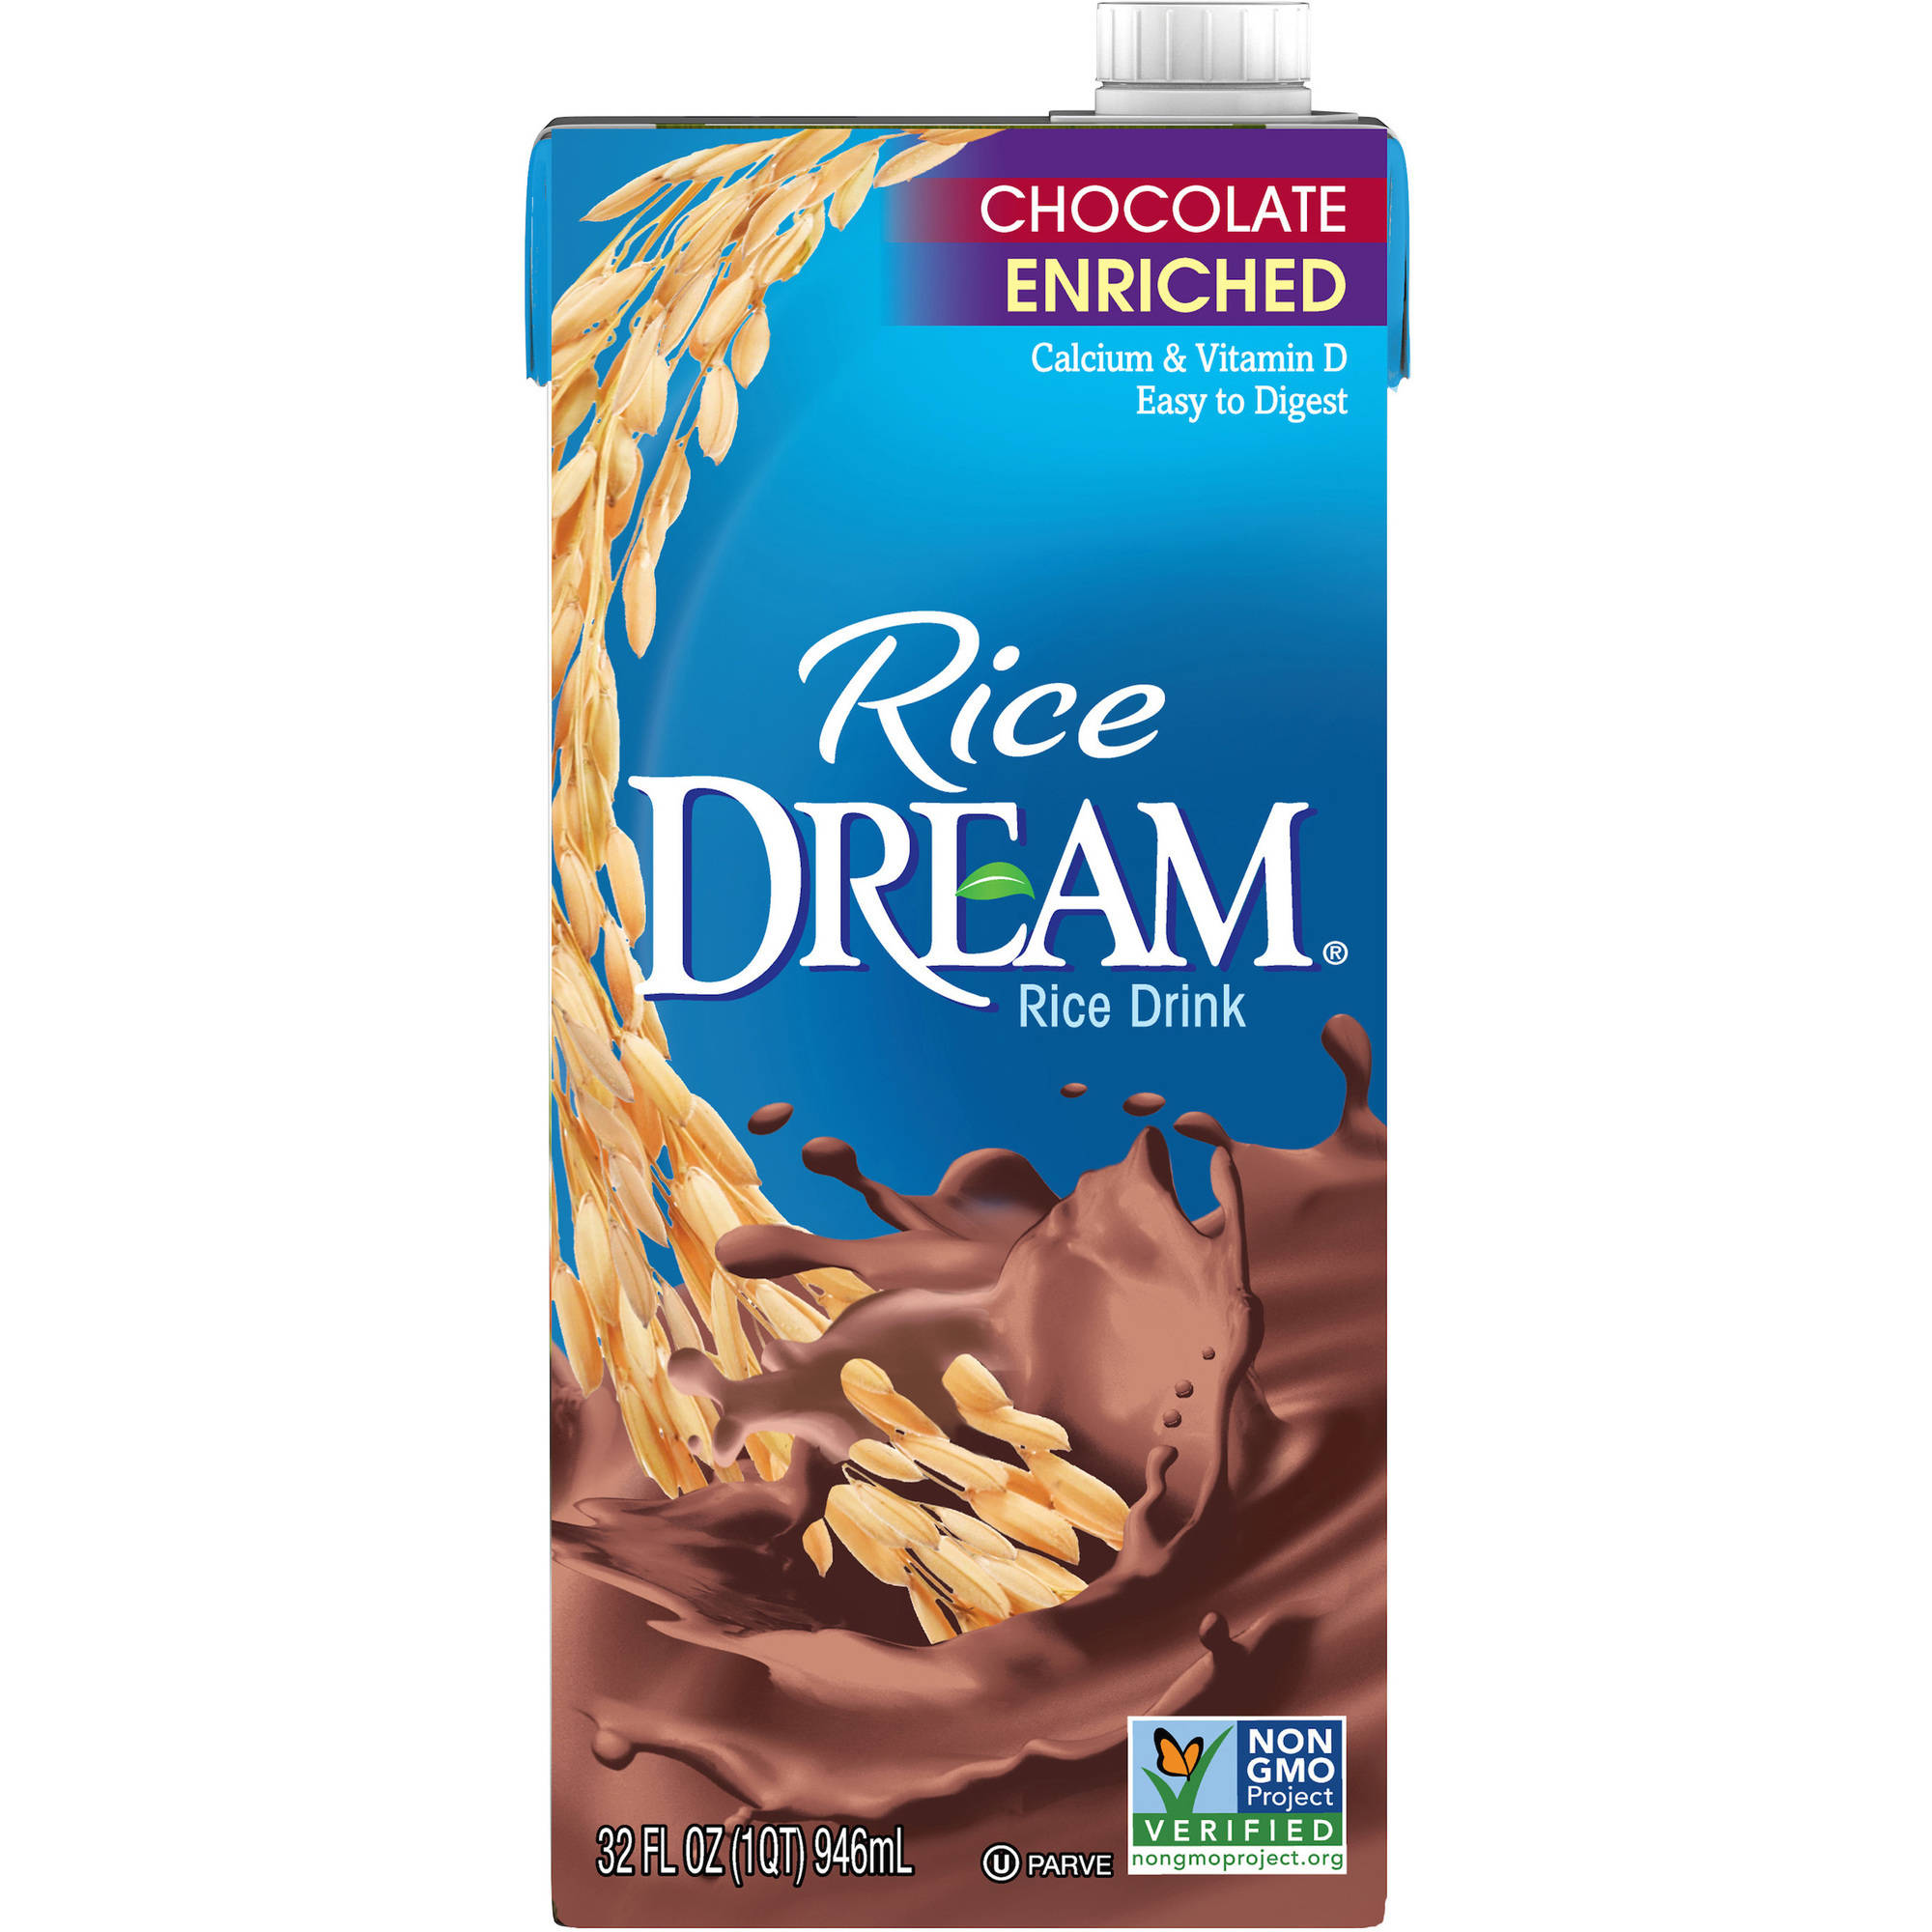 Rice Dream Enriched Chocolate Rice Drink, 32 fl oz